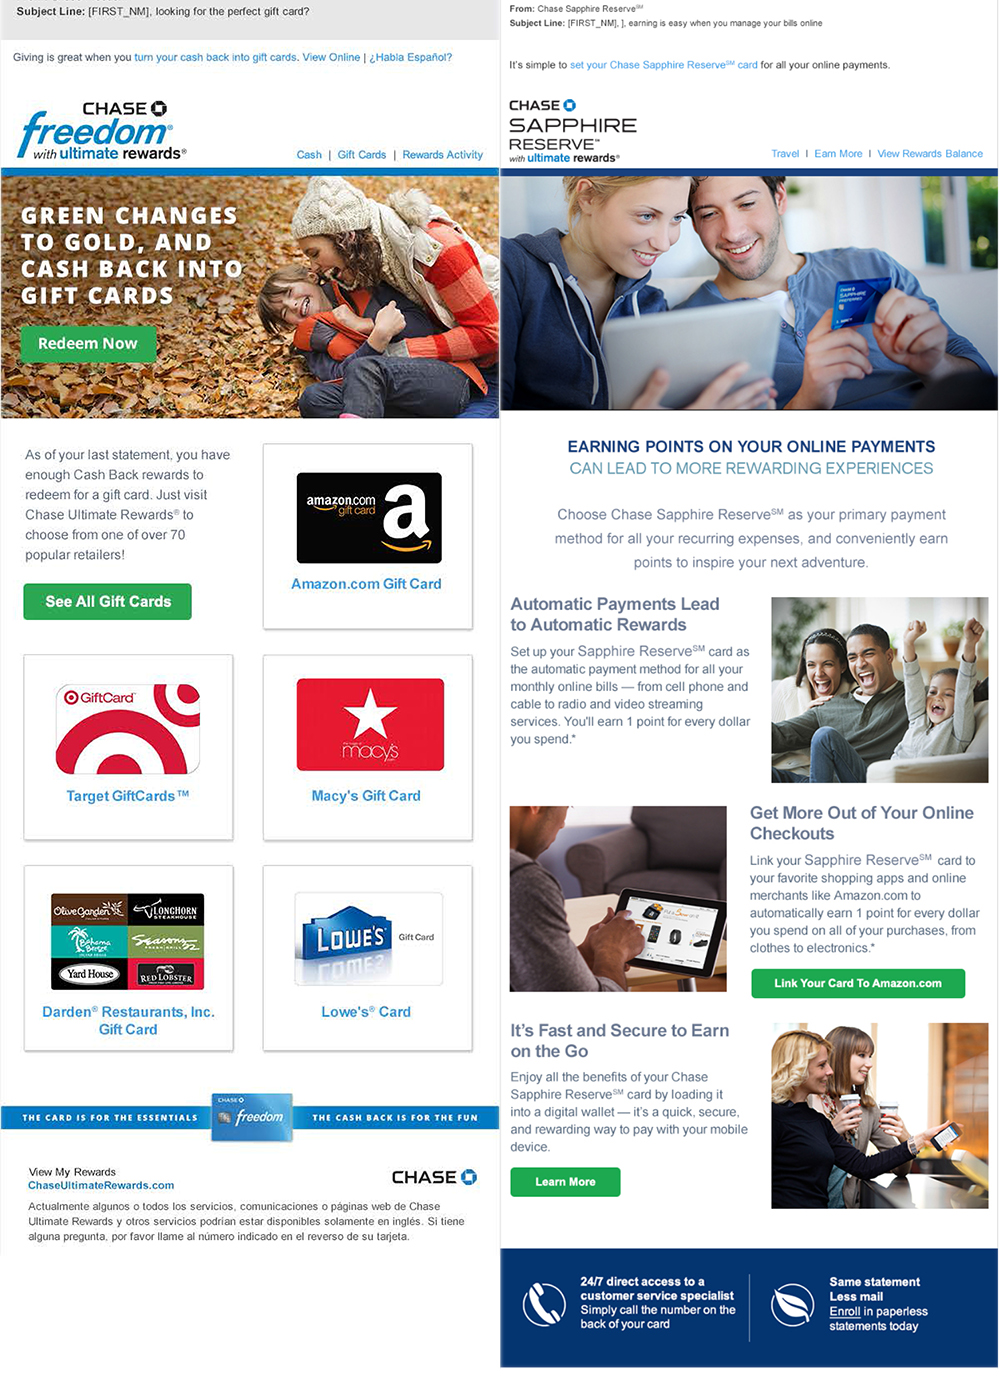 CHASE EMAIL MARKETING FREEDOM SAPPHIRE